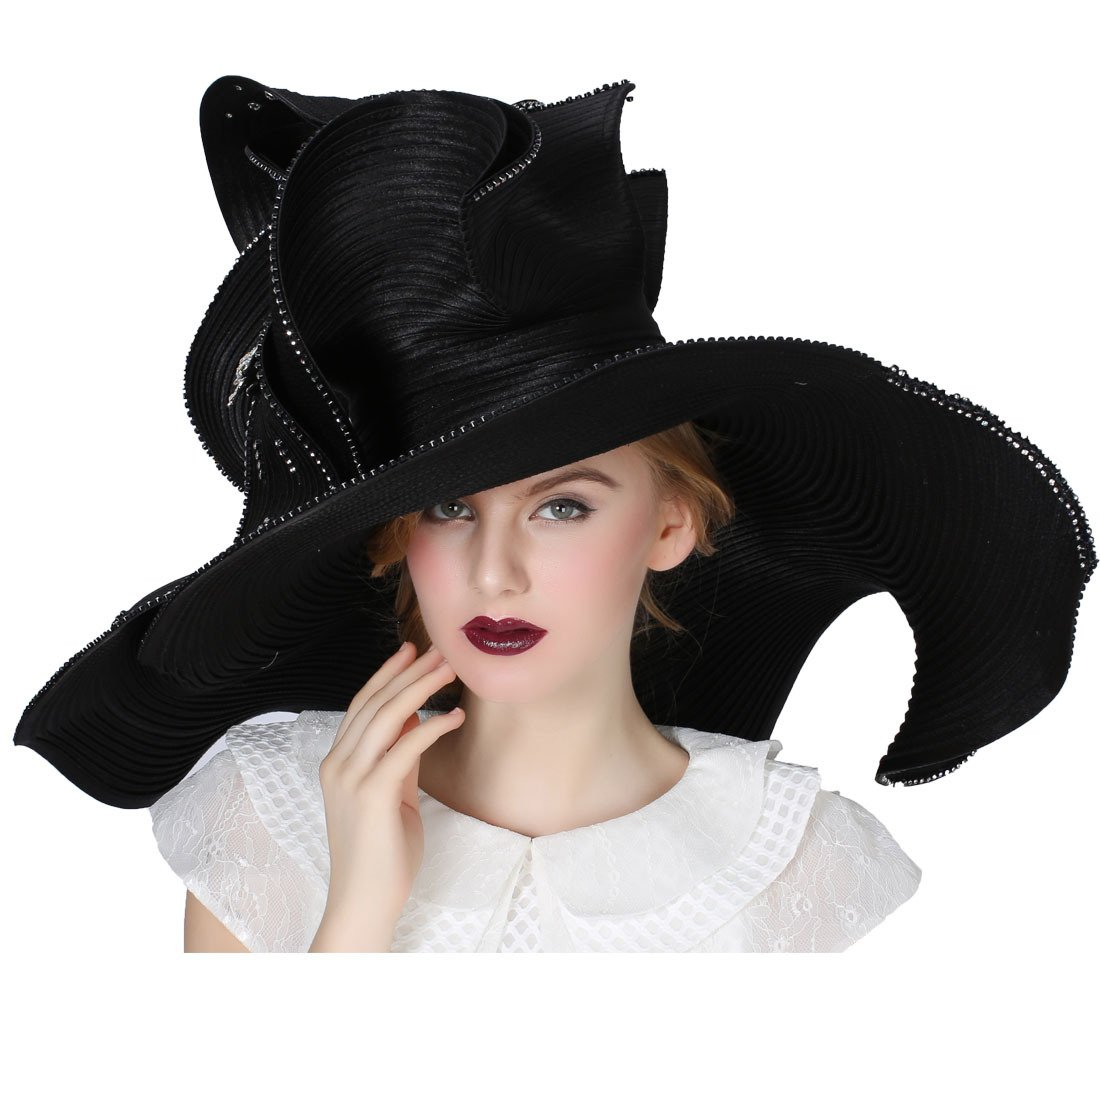 Koola's Black Women Church Hat Derby Big Wide Brim Wedding Hat Cocktail Tea Party Hat